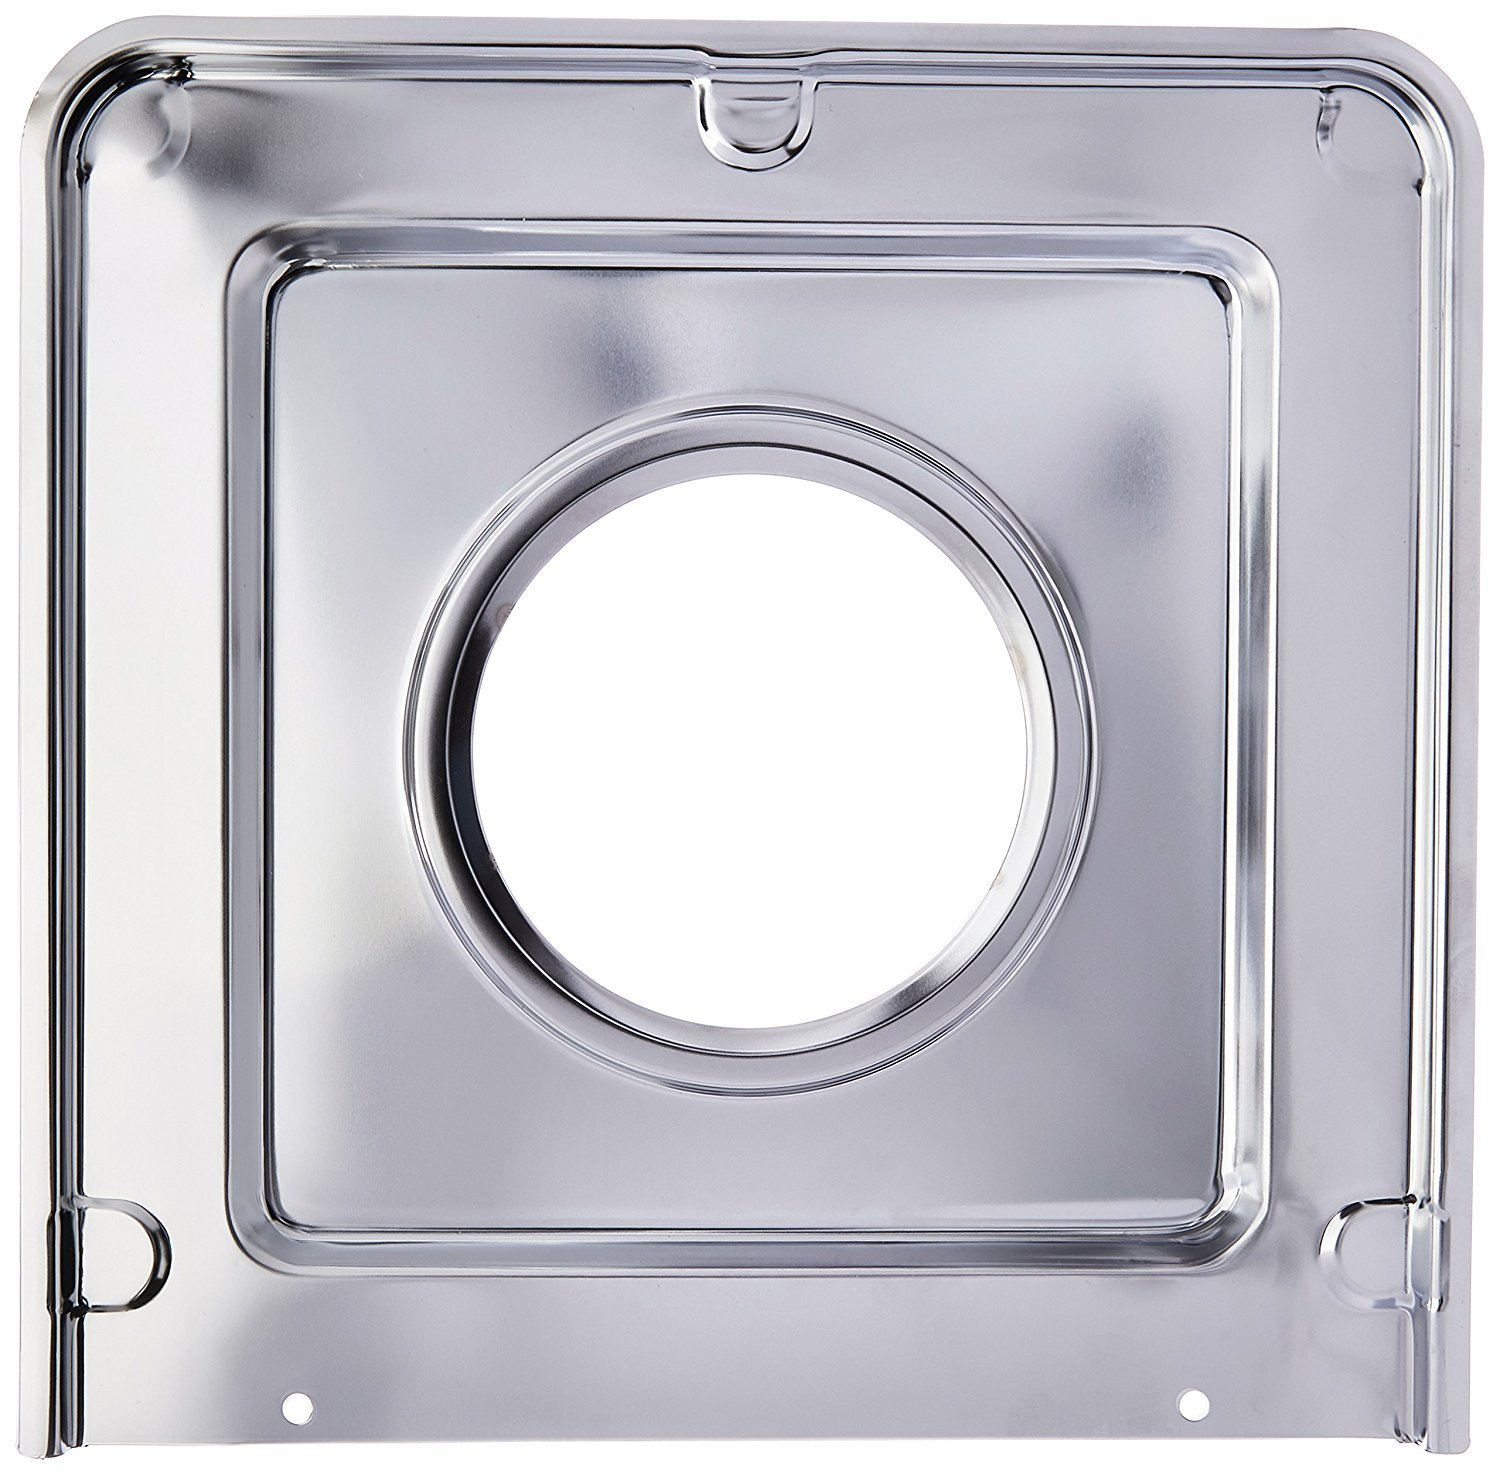 Range Kleen SGP401 Style J Chrome-Plated Square Drip Pan, 9.125 x 9.3125 Inches